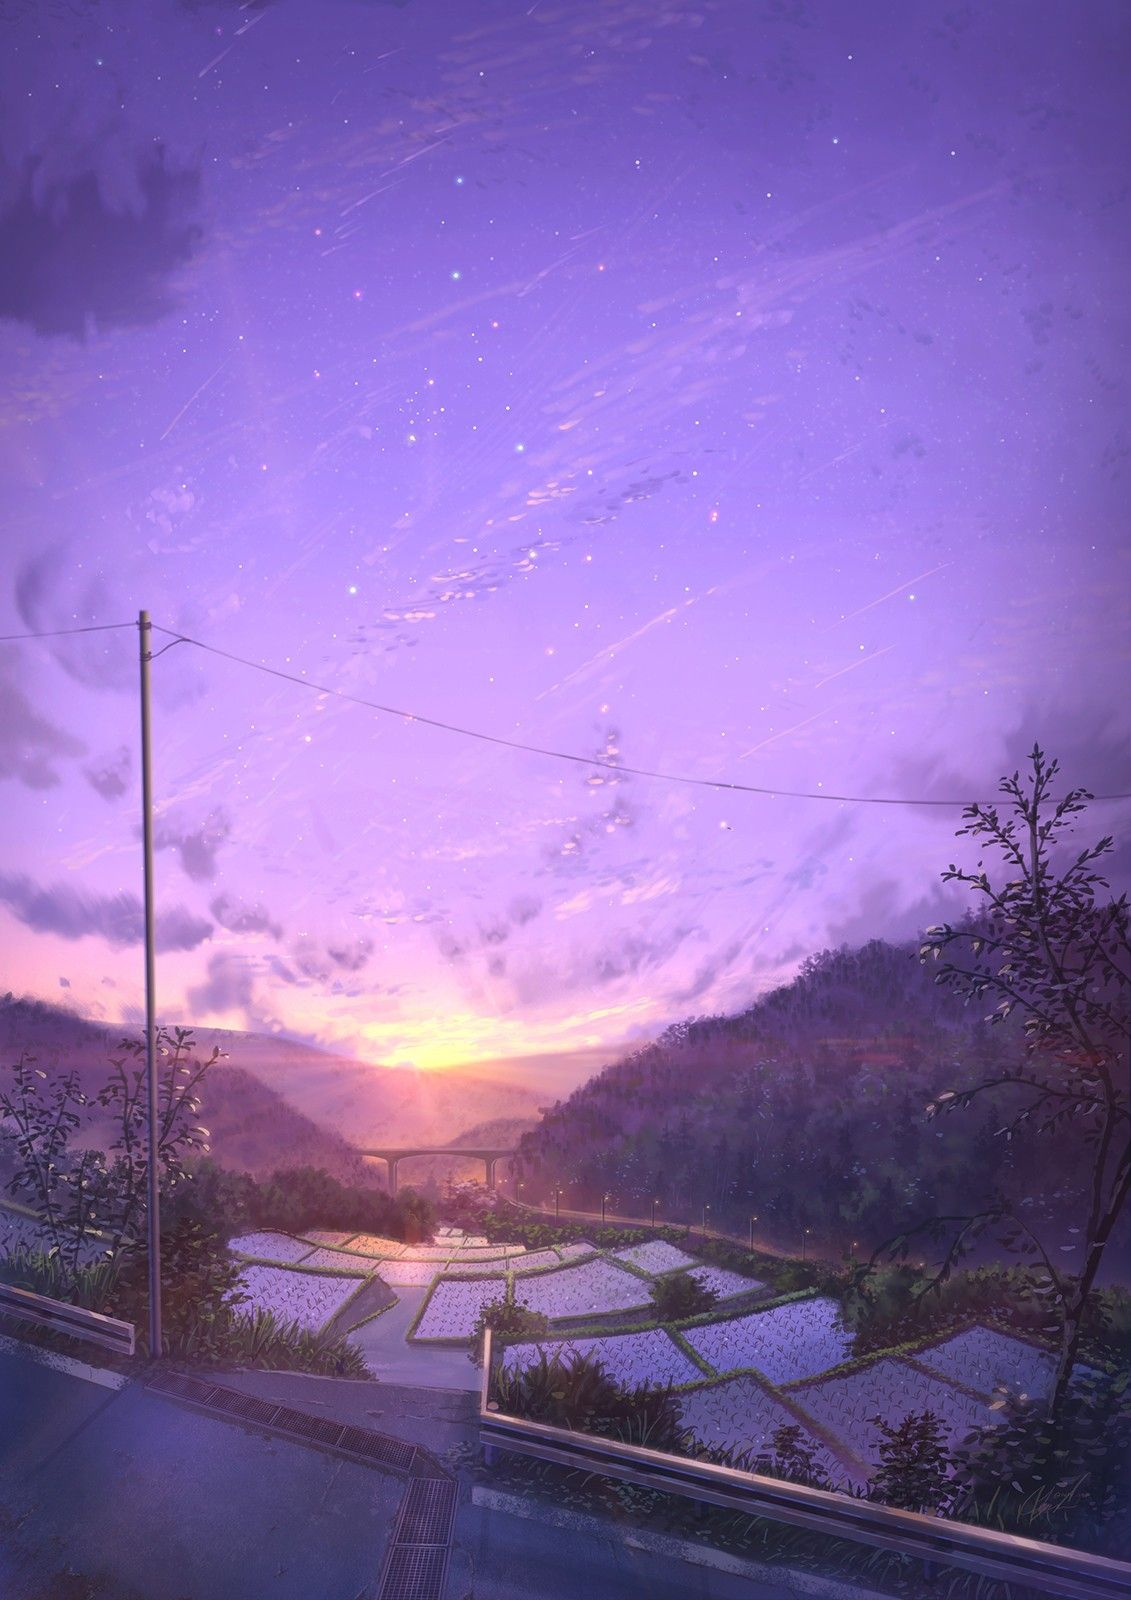 anime sky Wallpaper AnimeWallpaper Kawaii Art